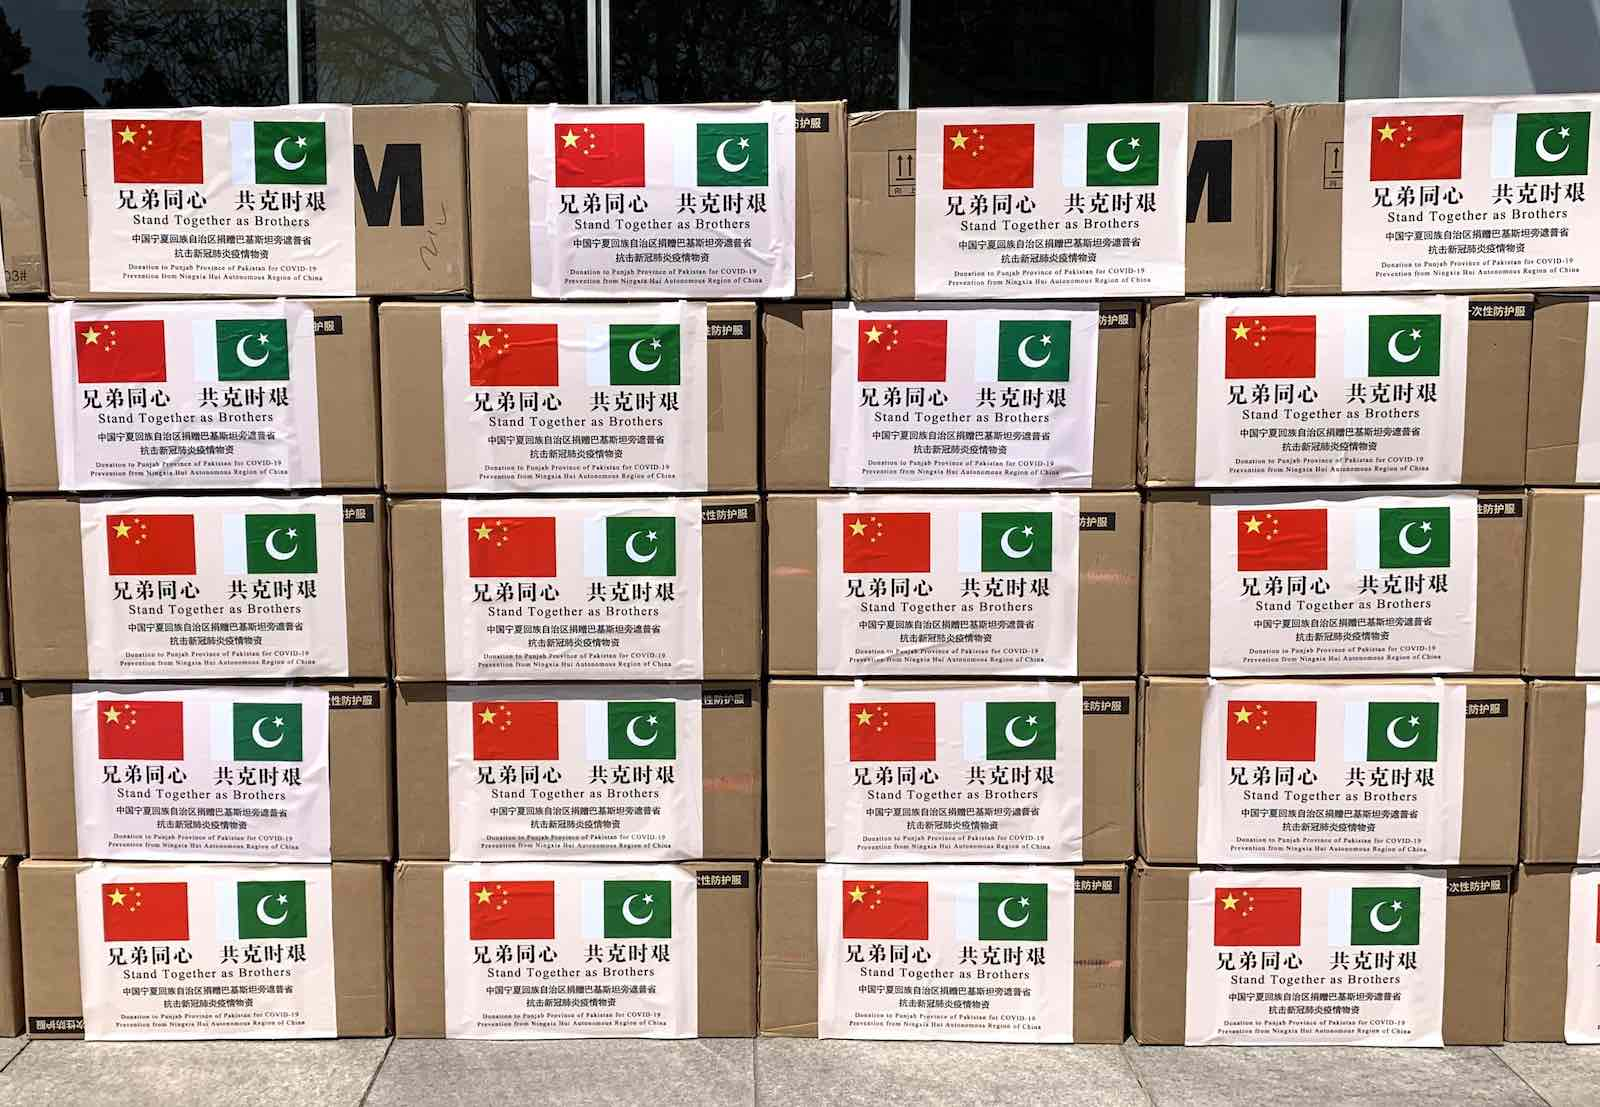 Boxes of medical supplies to be donated to Pakistan for anti-epidemic work, 24 April 2020 in Yinchuan, Ningxia Hui Autonomous Region of China (Li Peishan/China News Service via Getty Images)